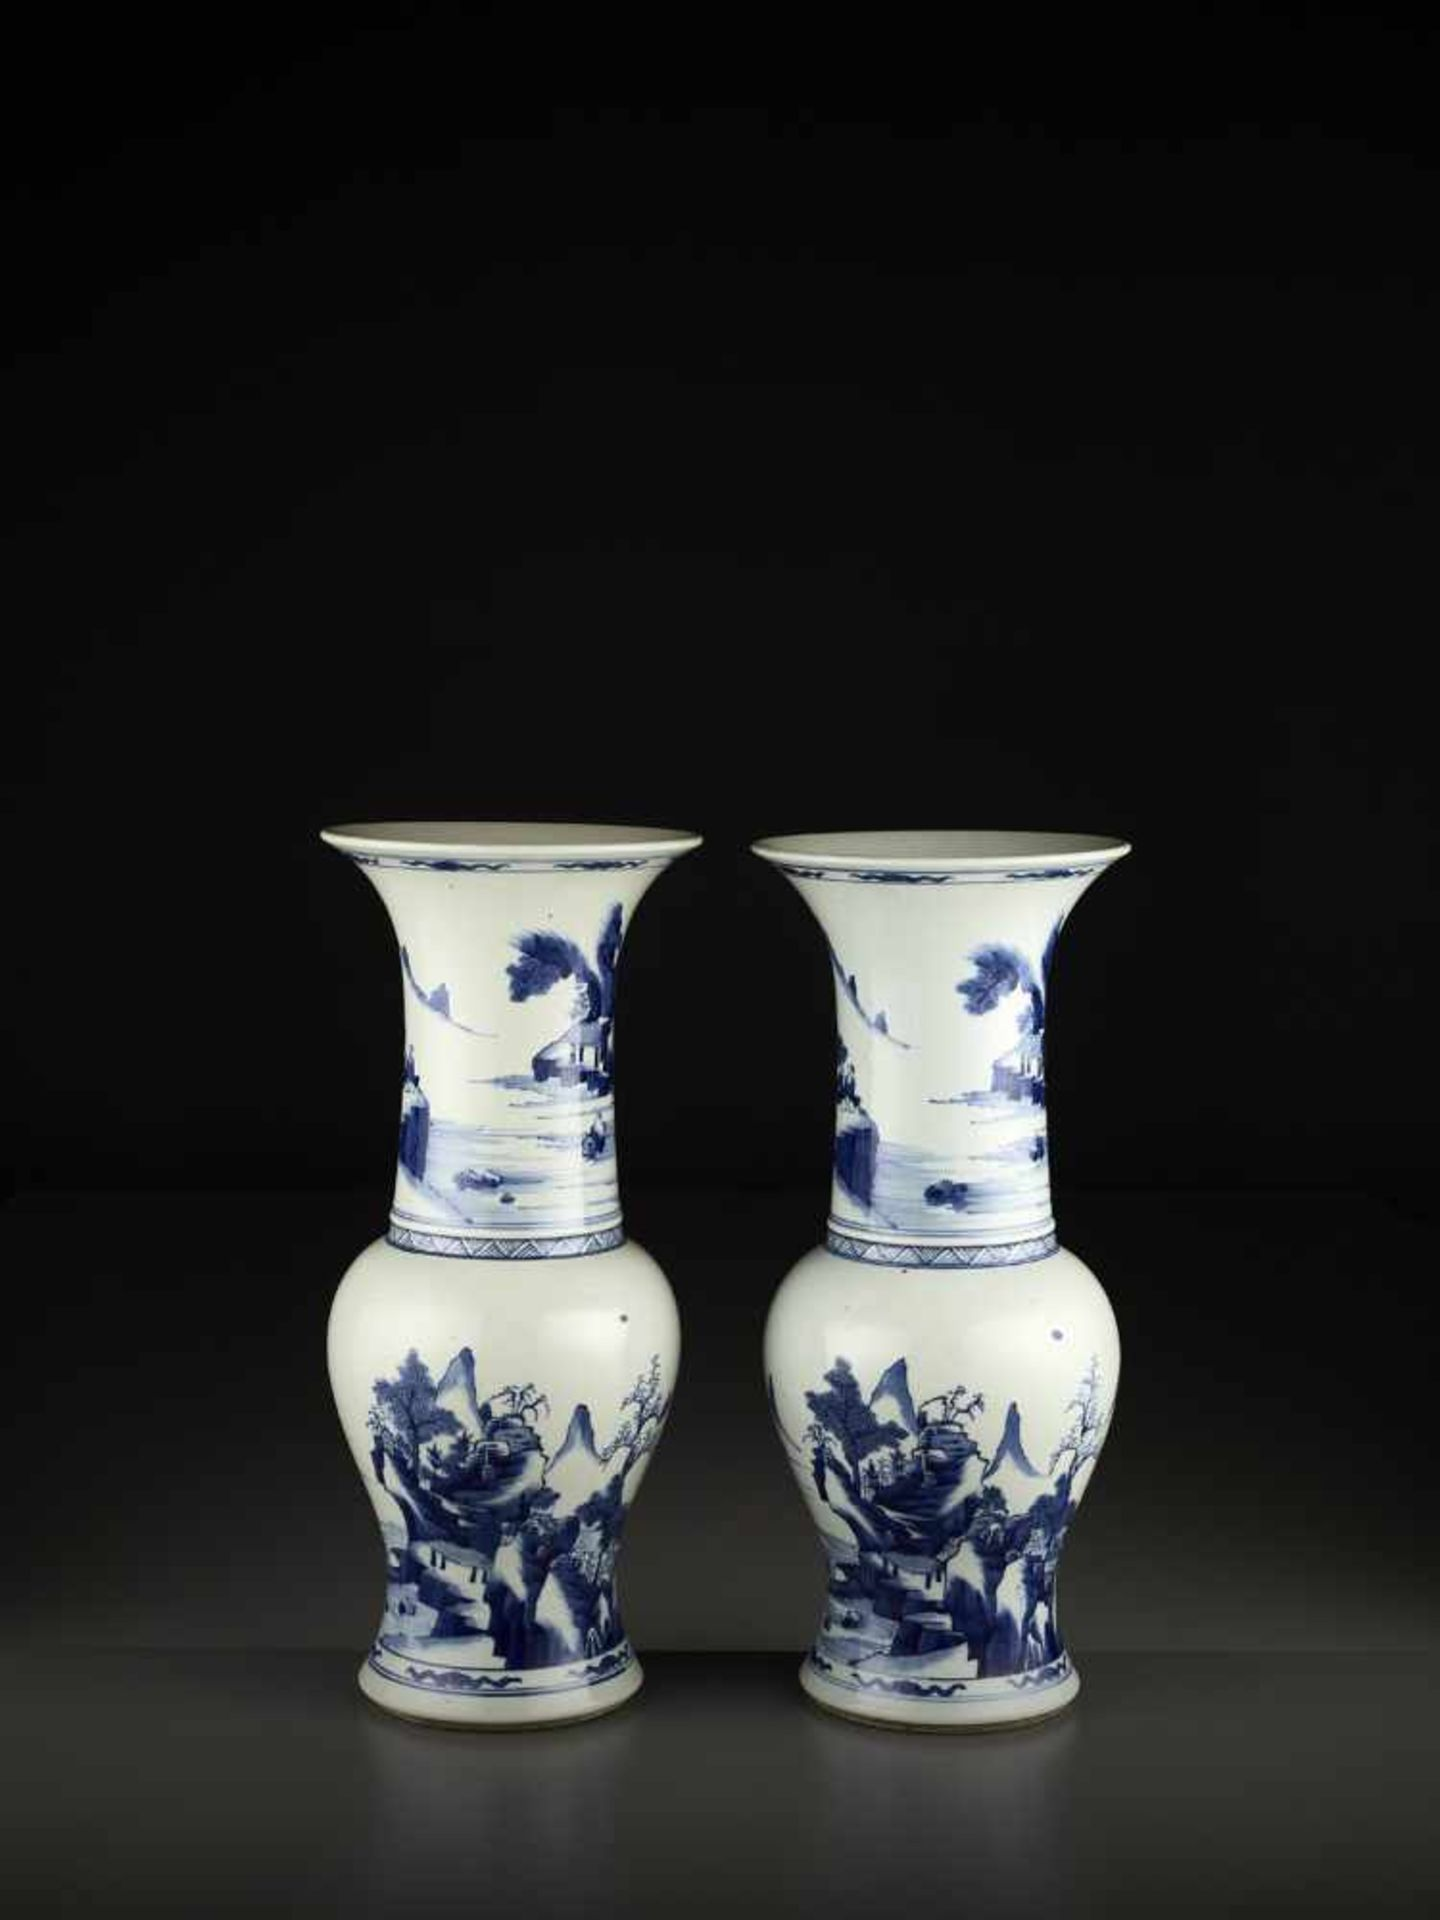 Los 441 - A PAIR OF BLUE AND WHITE YEN YEN VASES, LATE QING OR REPUBLIC